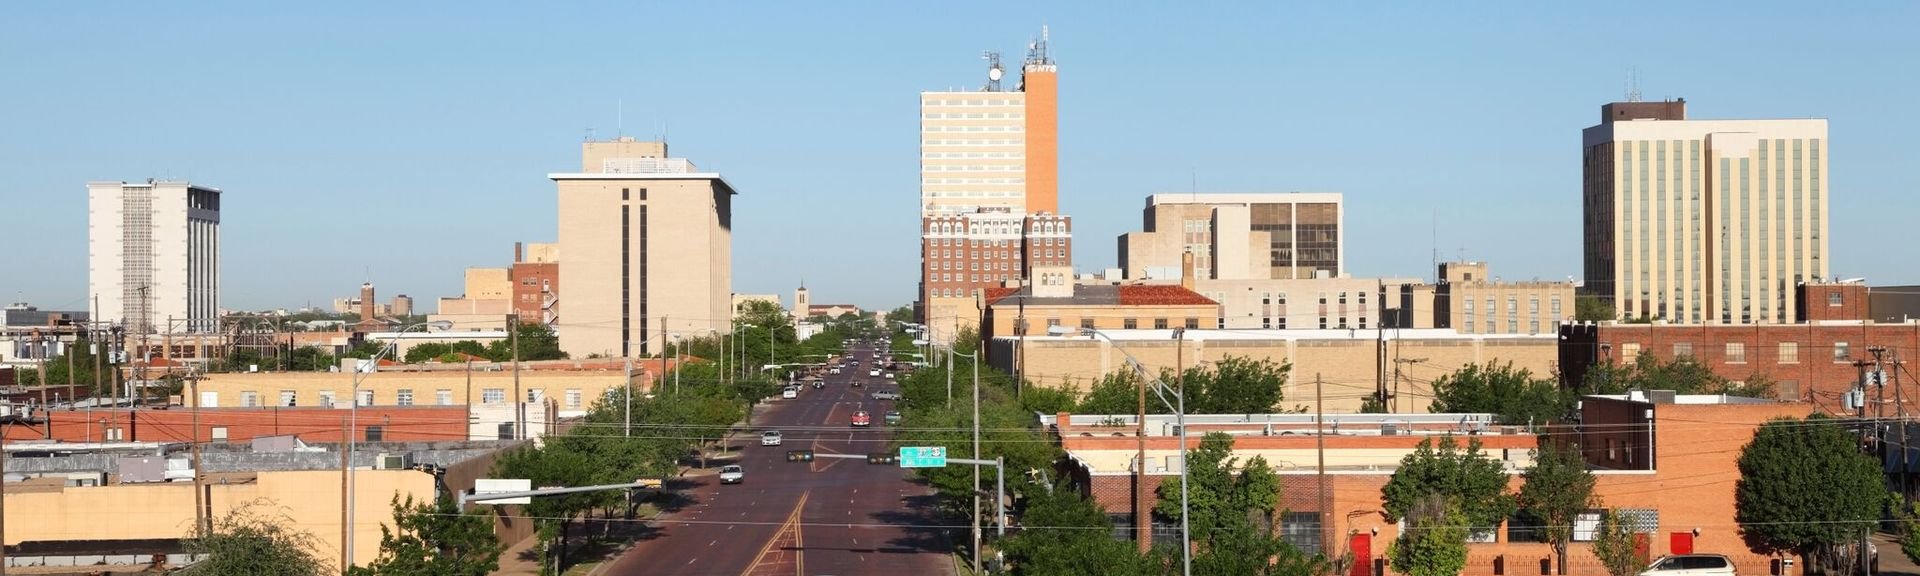 Lubbock, Texas, United States of America